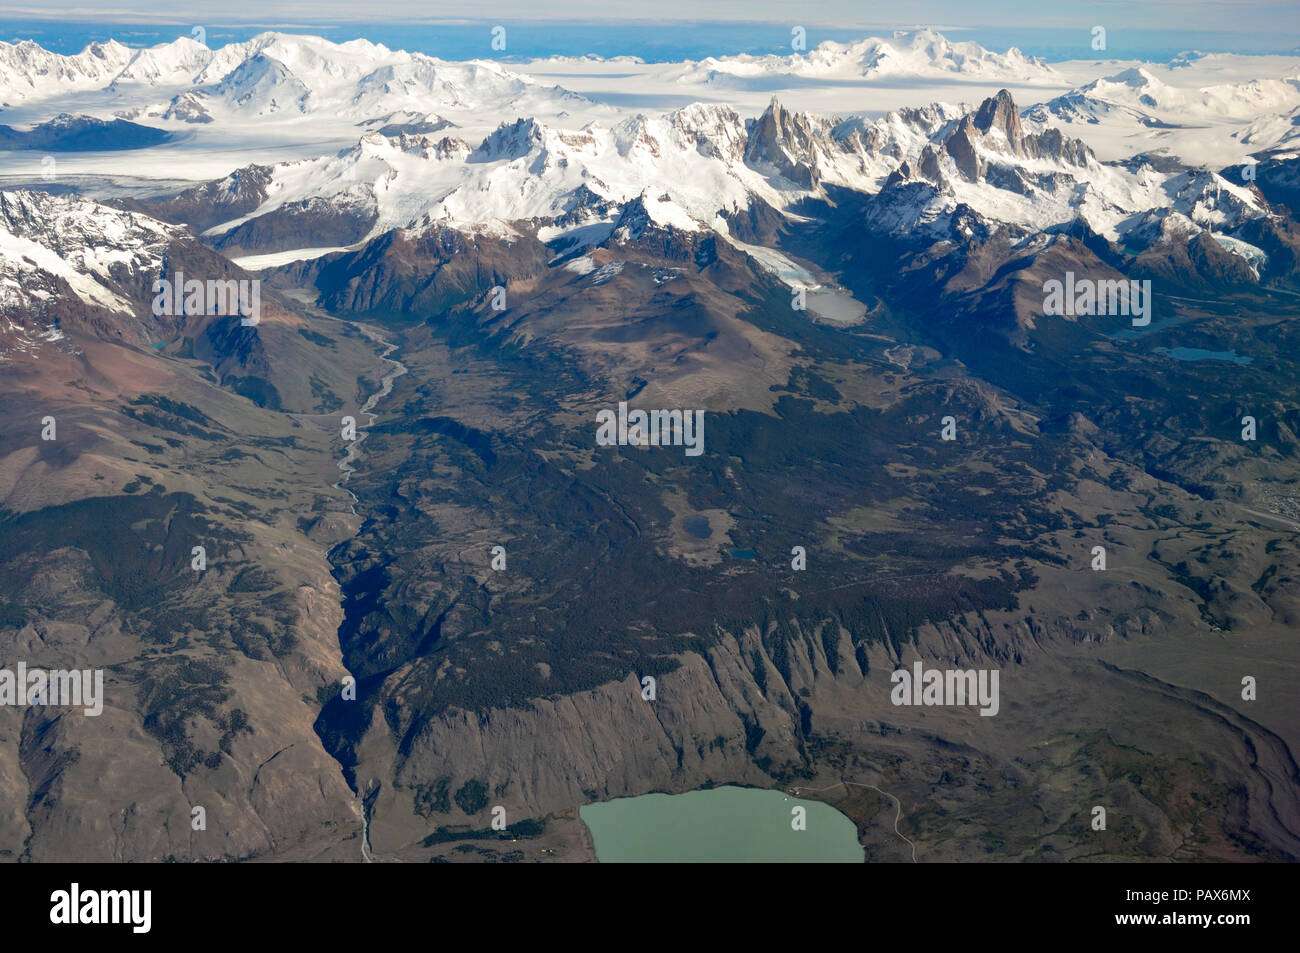 aerial view of mountains Fitz Roy, Cerro Torre, volcano Lautaro and the southern patagonian ice field, Patagonia, between Chile and Argentina - Stock Image